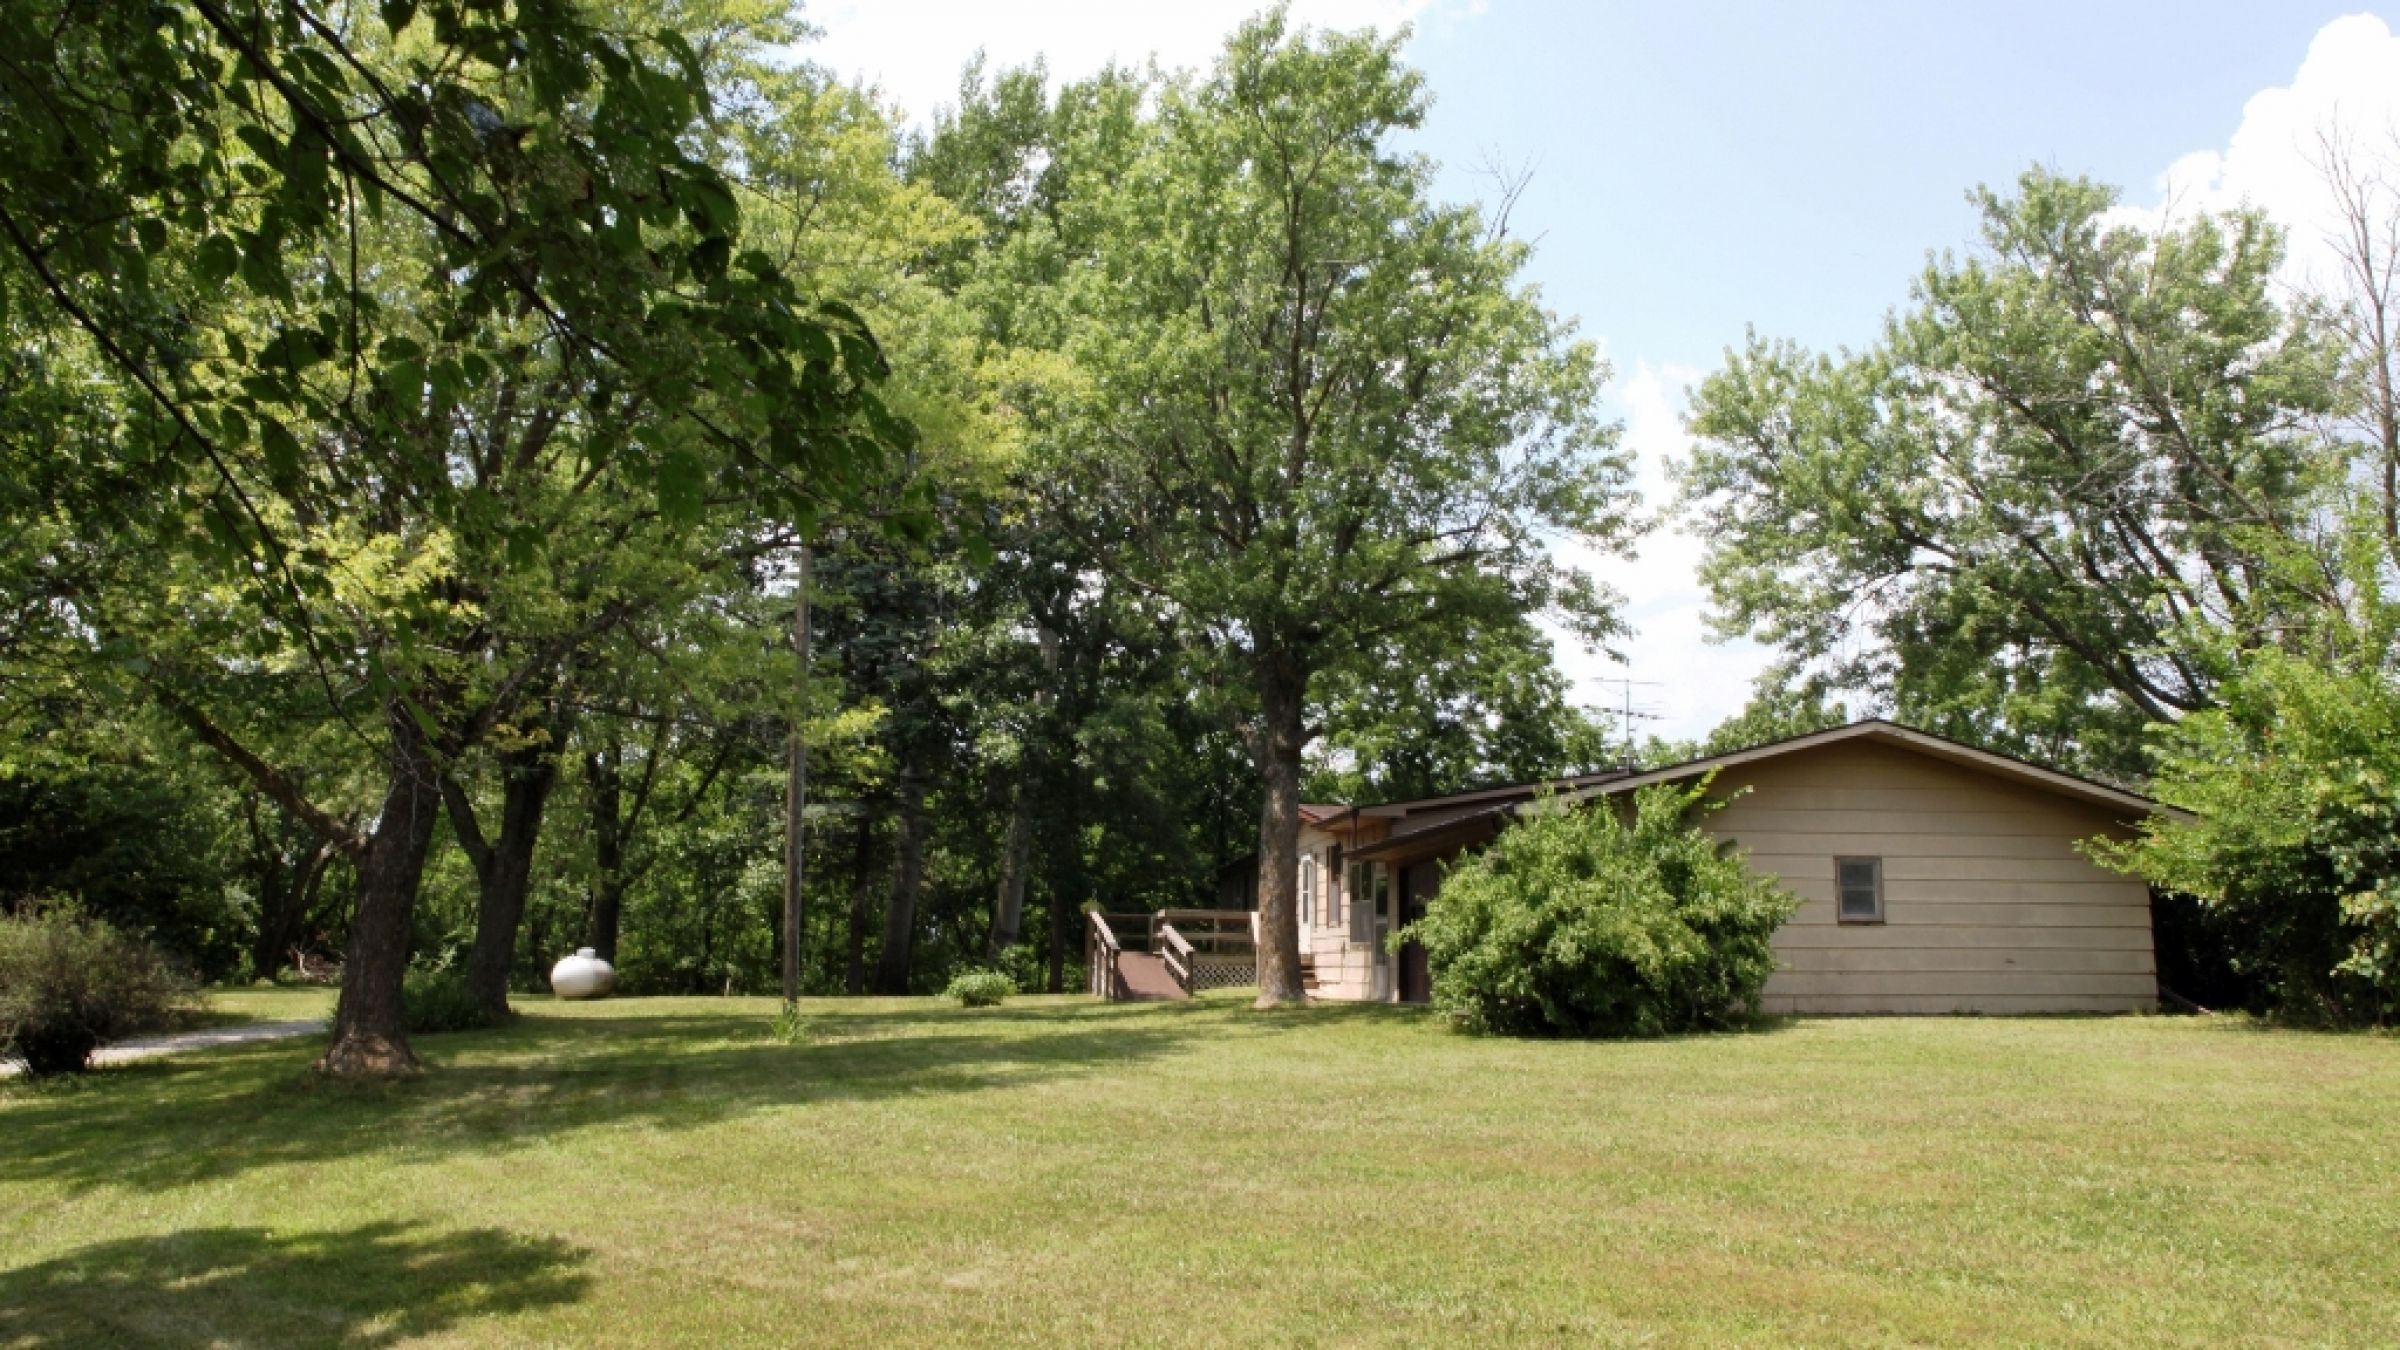 residential-lucas-county-iowa-2-acres-listing-number-15392-6-2021-03-03-215631.JPG